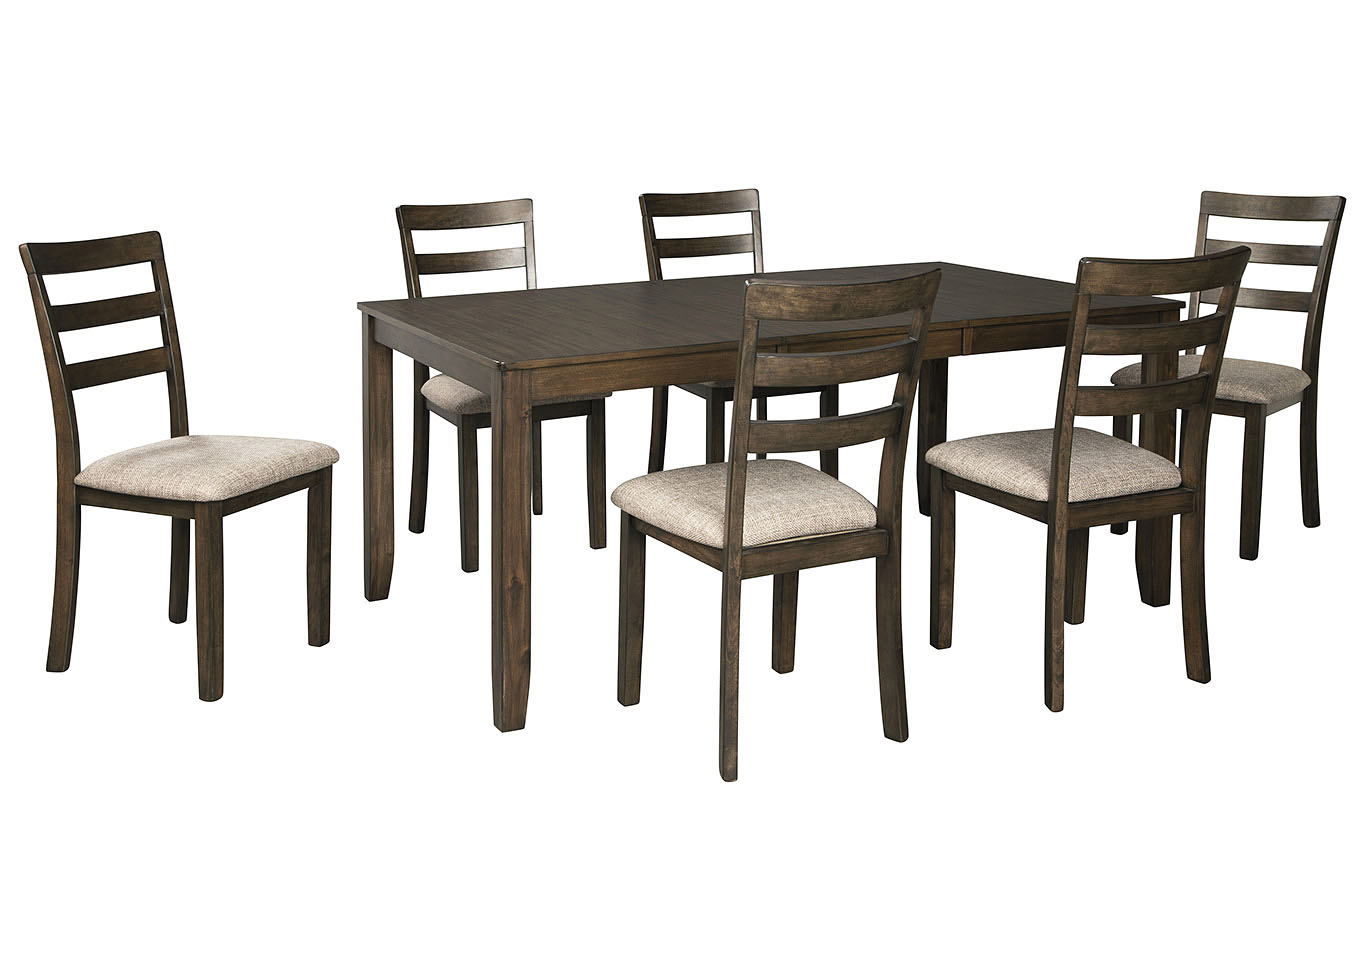 Drewing Dining Room Table w/6 Side Chairs,Benchcraft